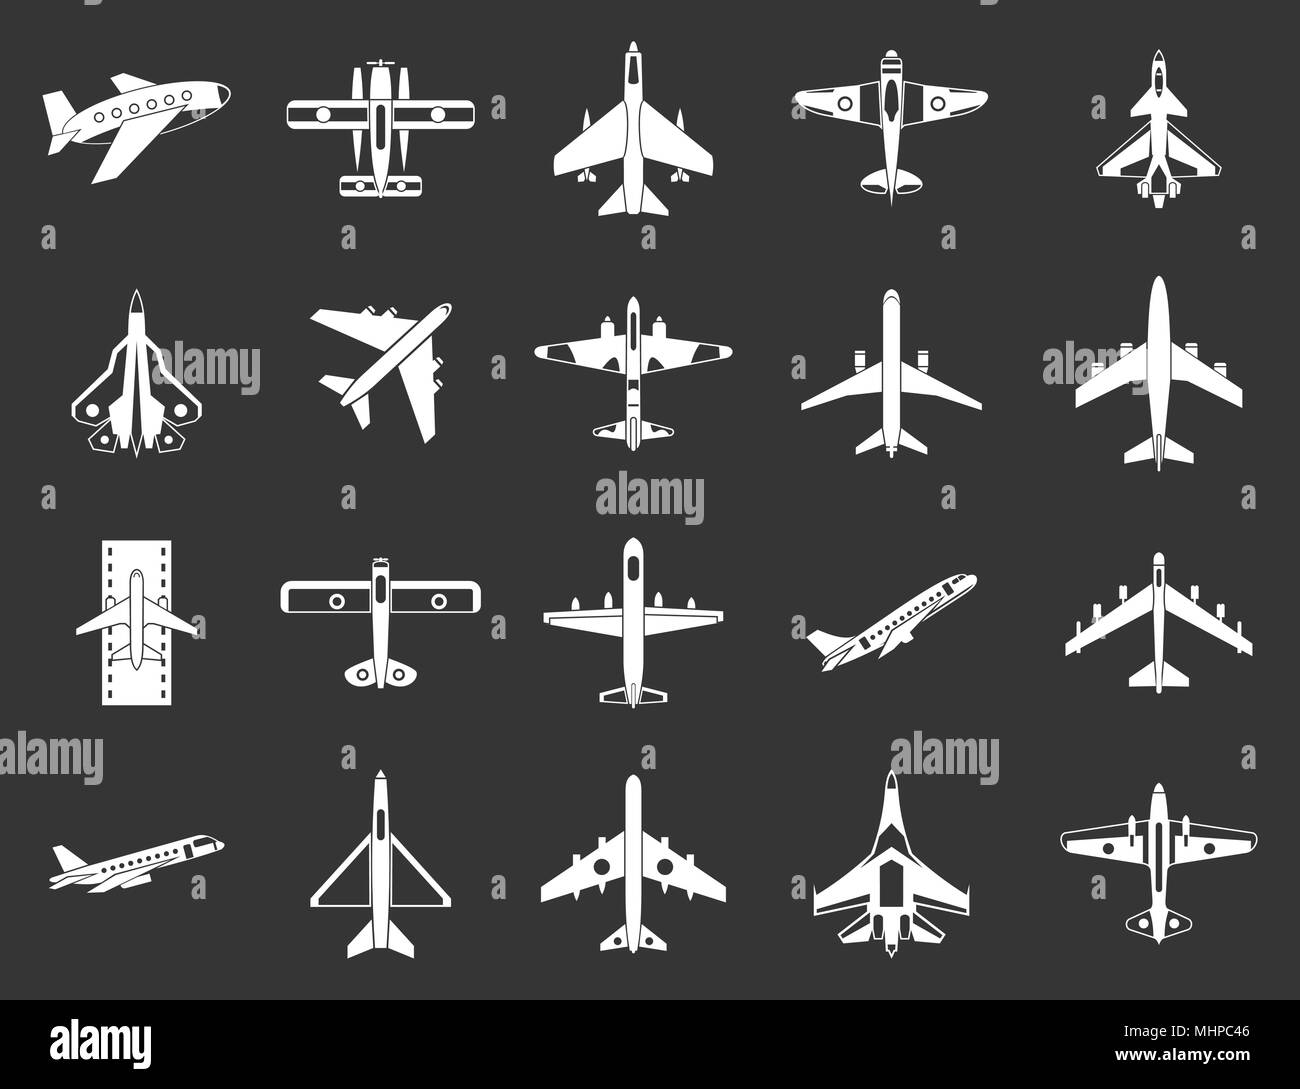 Plane icon set grey vector - Stock Image